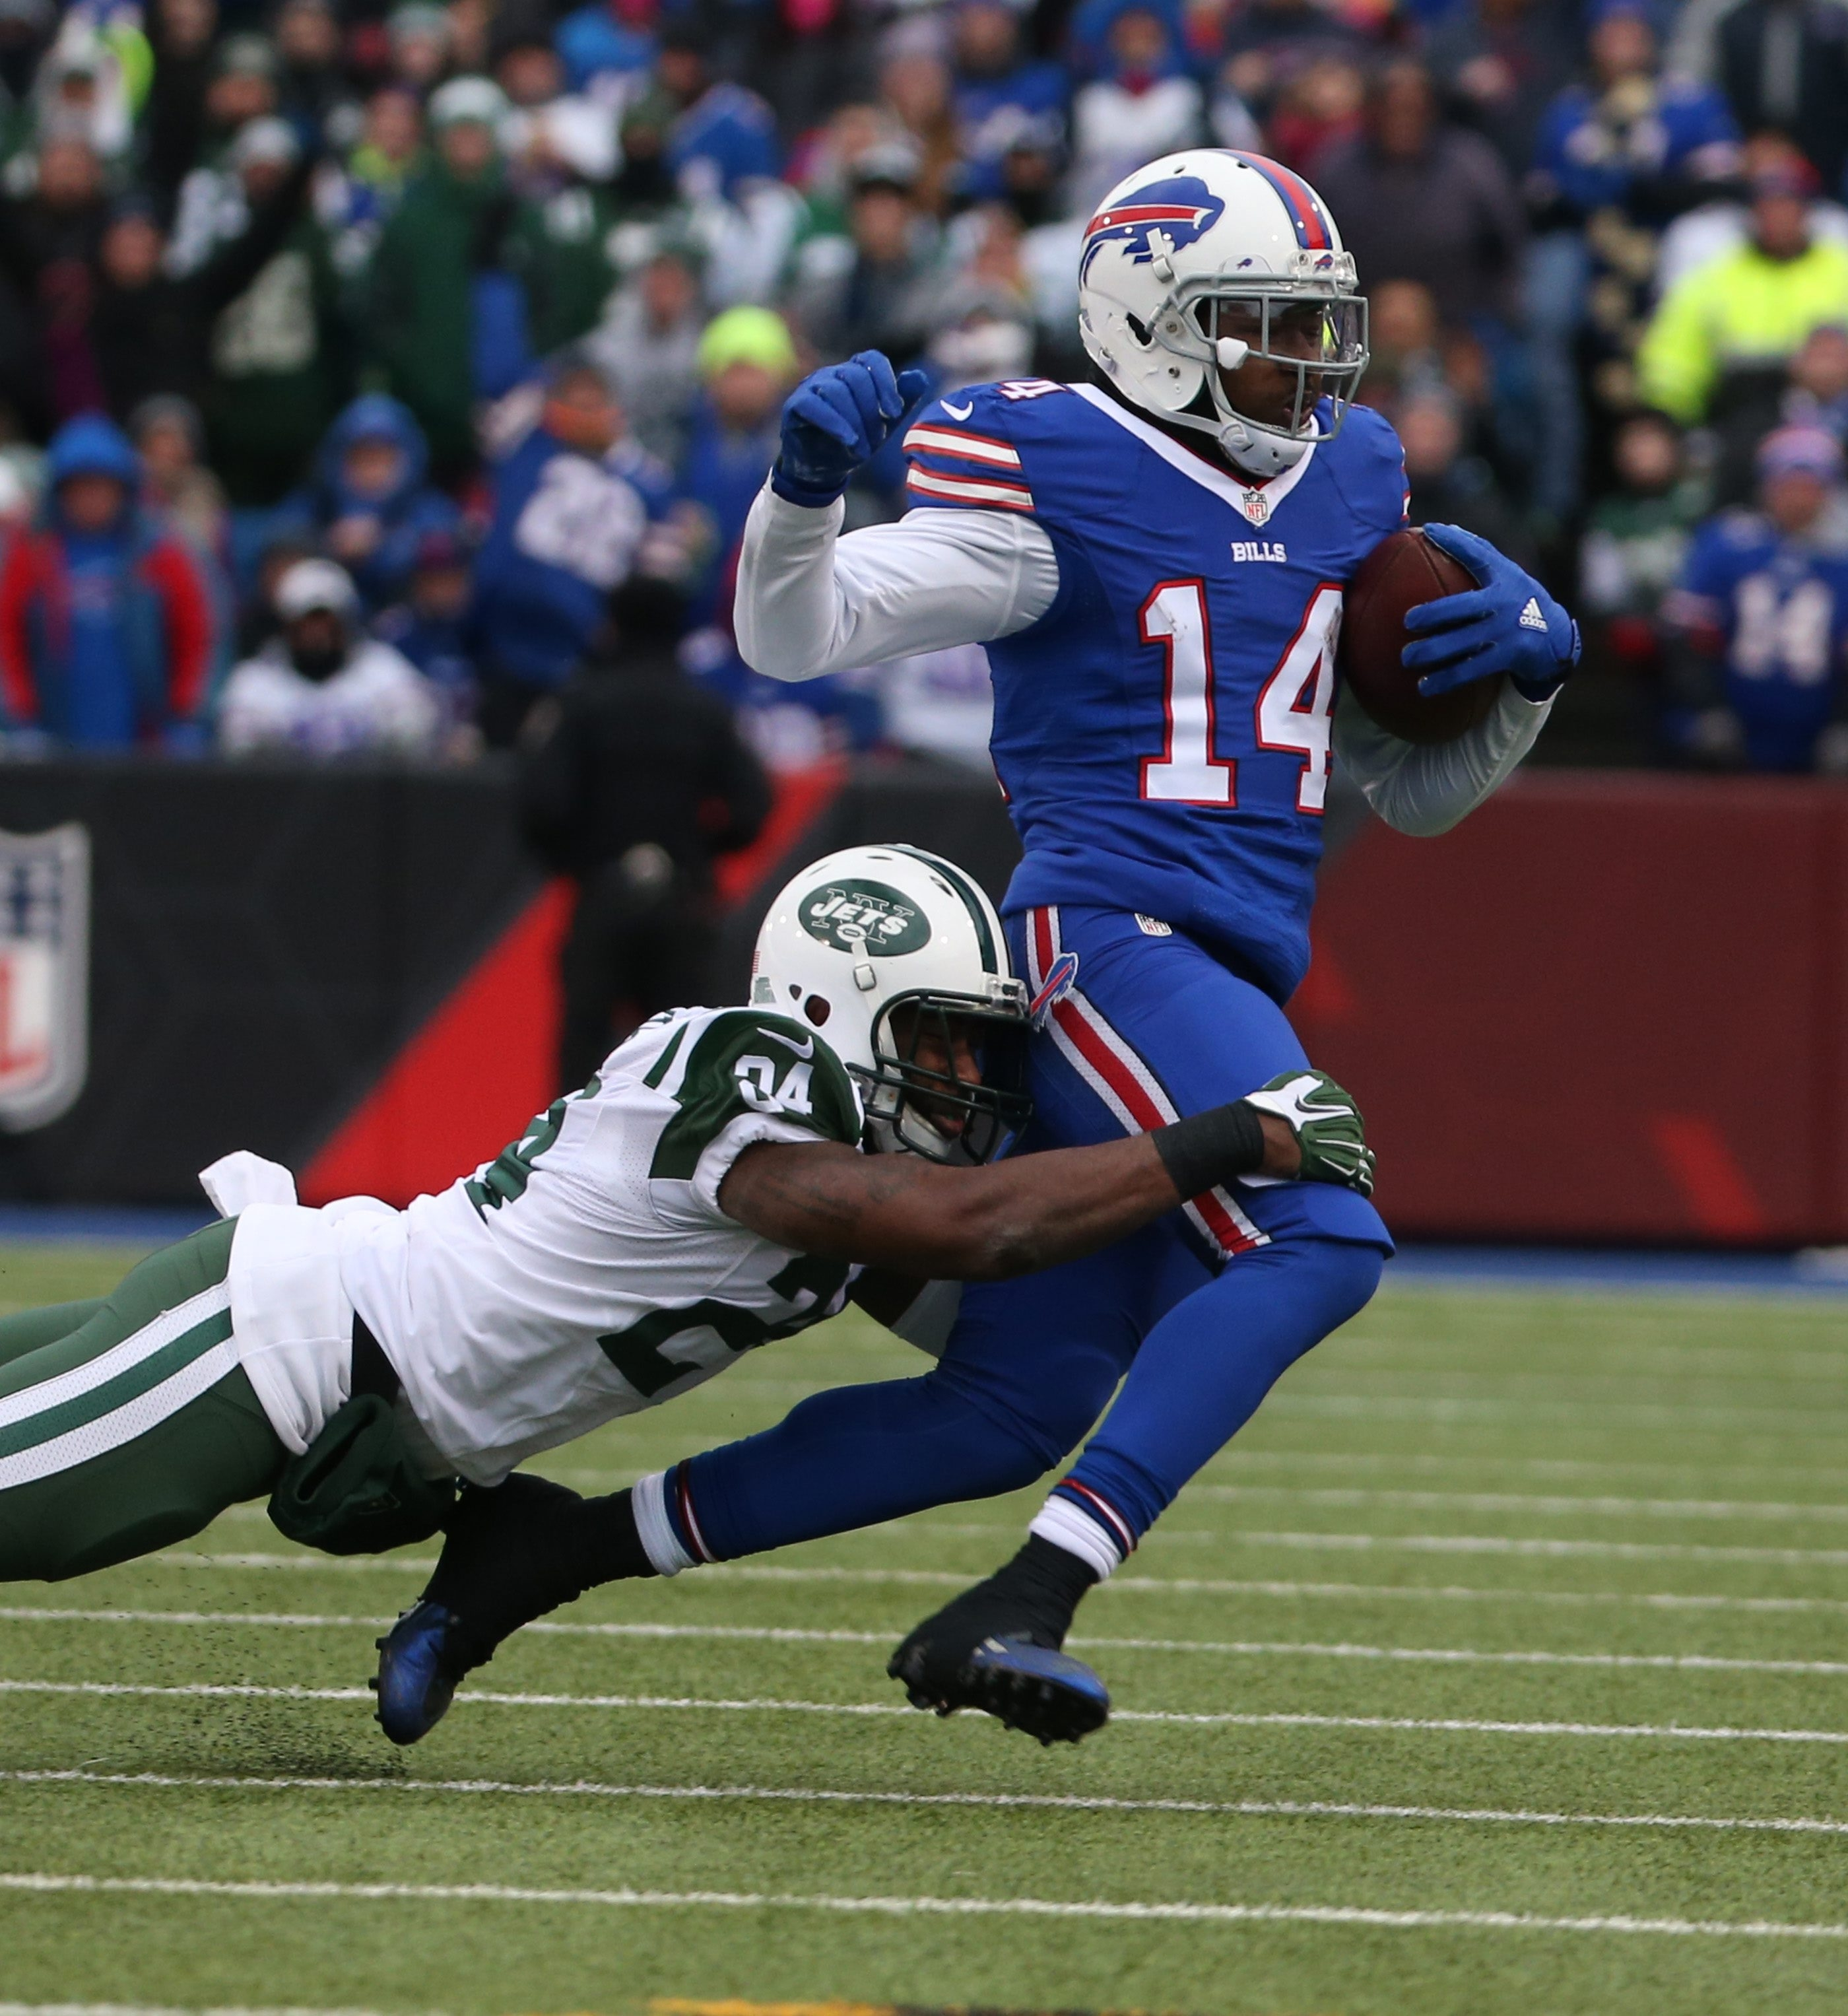 Buffalo Bills wide receiver Sammy Watkins (14) caches a pass for a first down in front of New York Jets cornerback Darrelle Revis (24) in the third quarter on Sunday, Jan. 3, 2016.